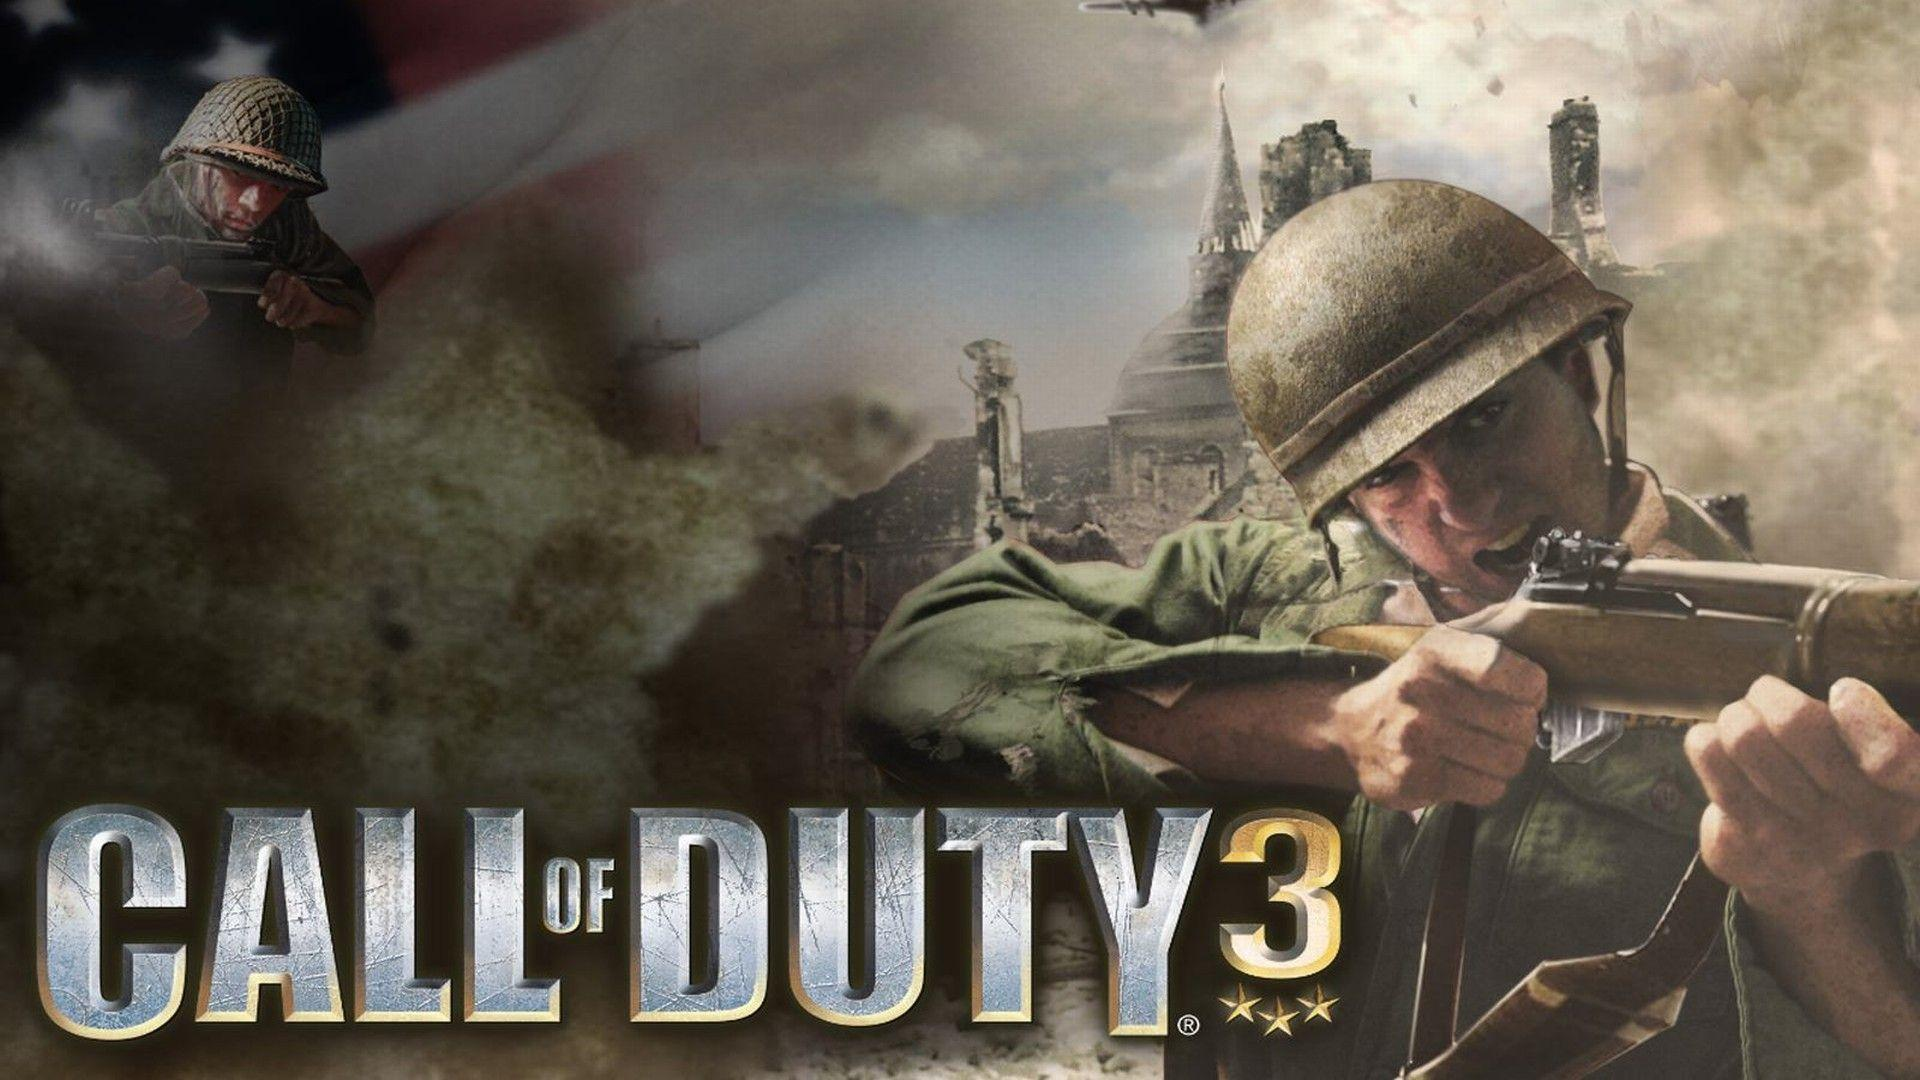 Call Of Duty 3 Wallpapers - Wallpaper Cave